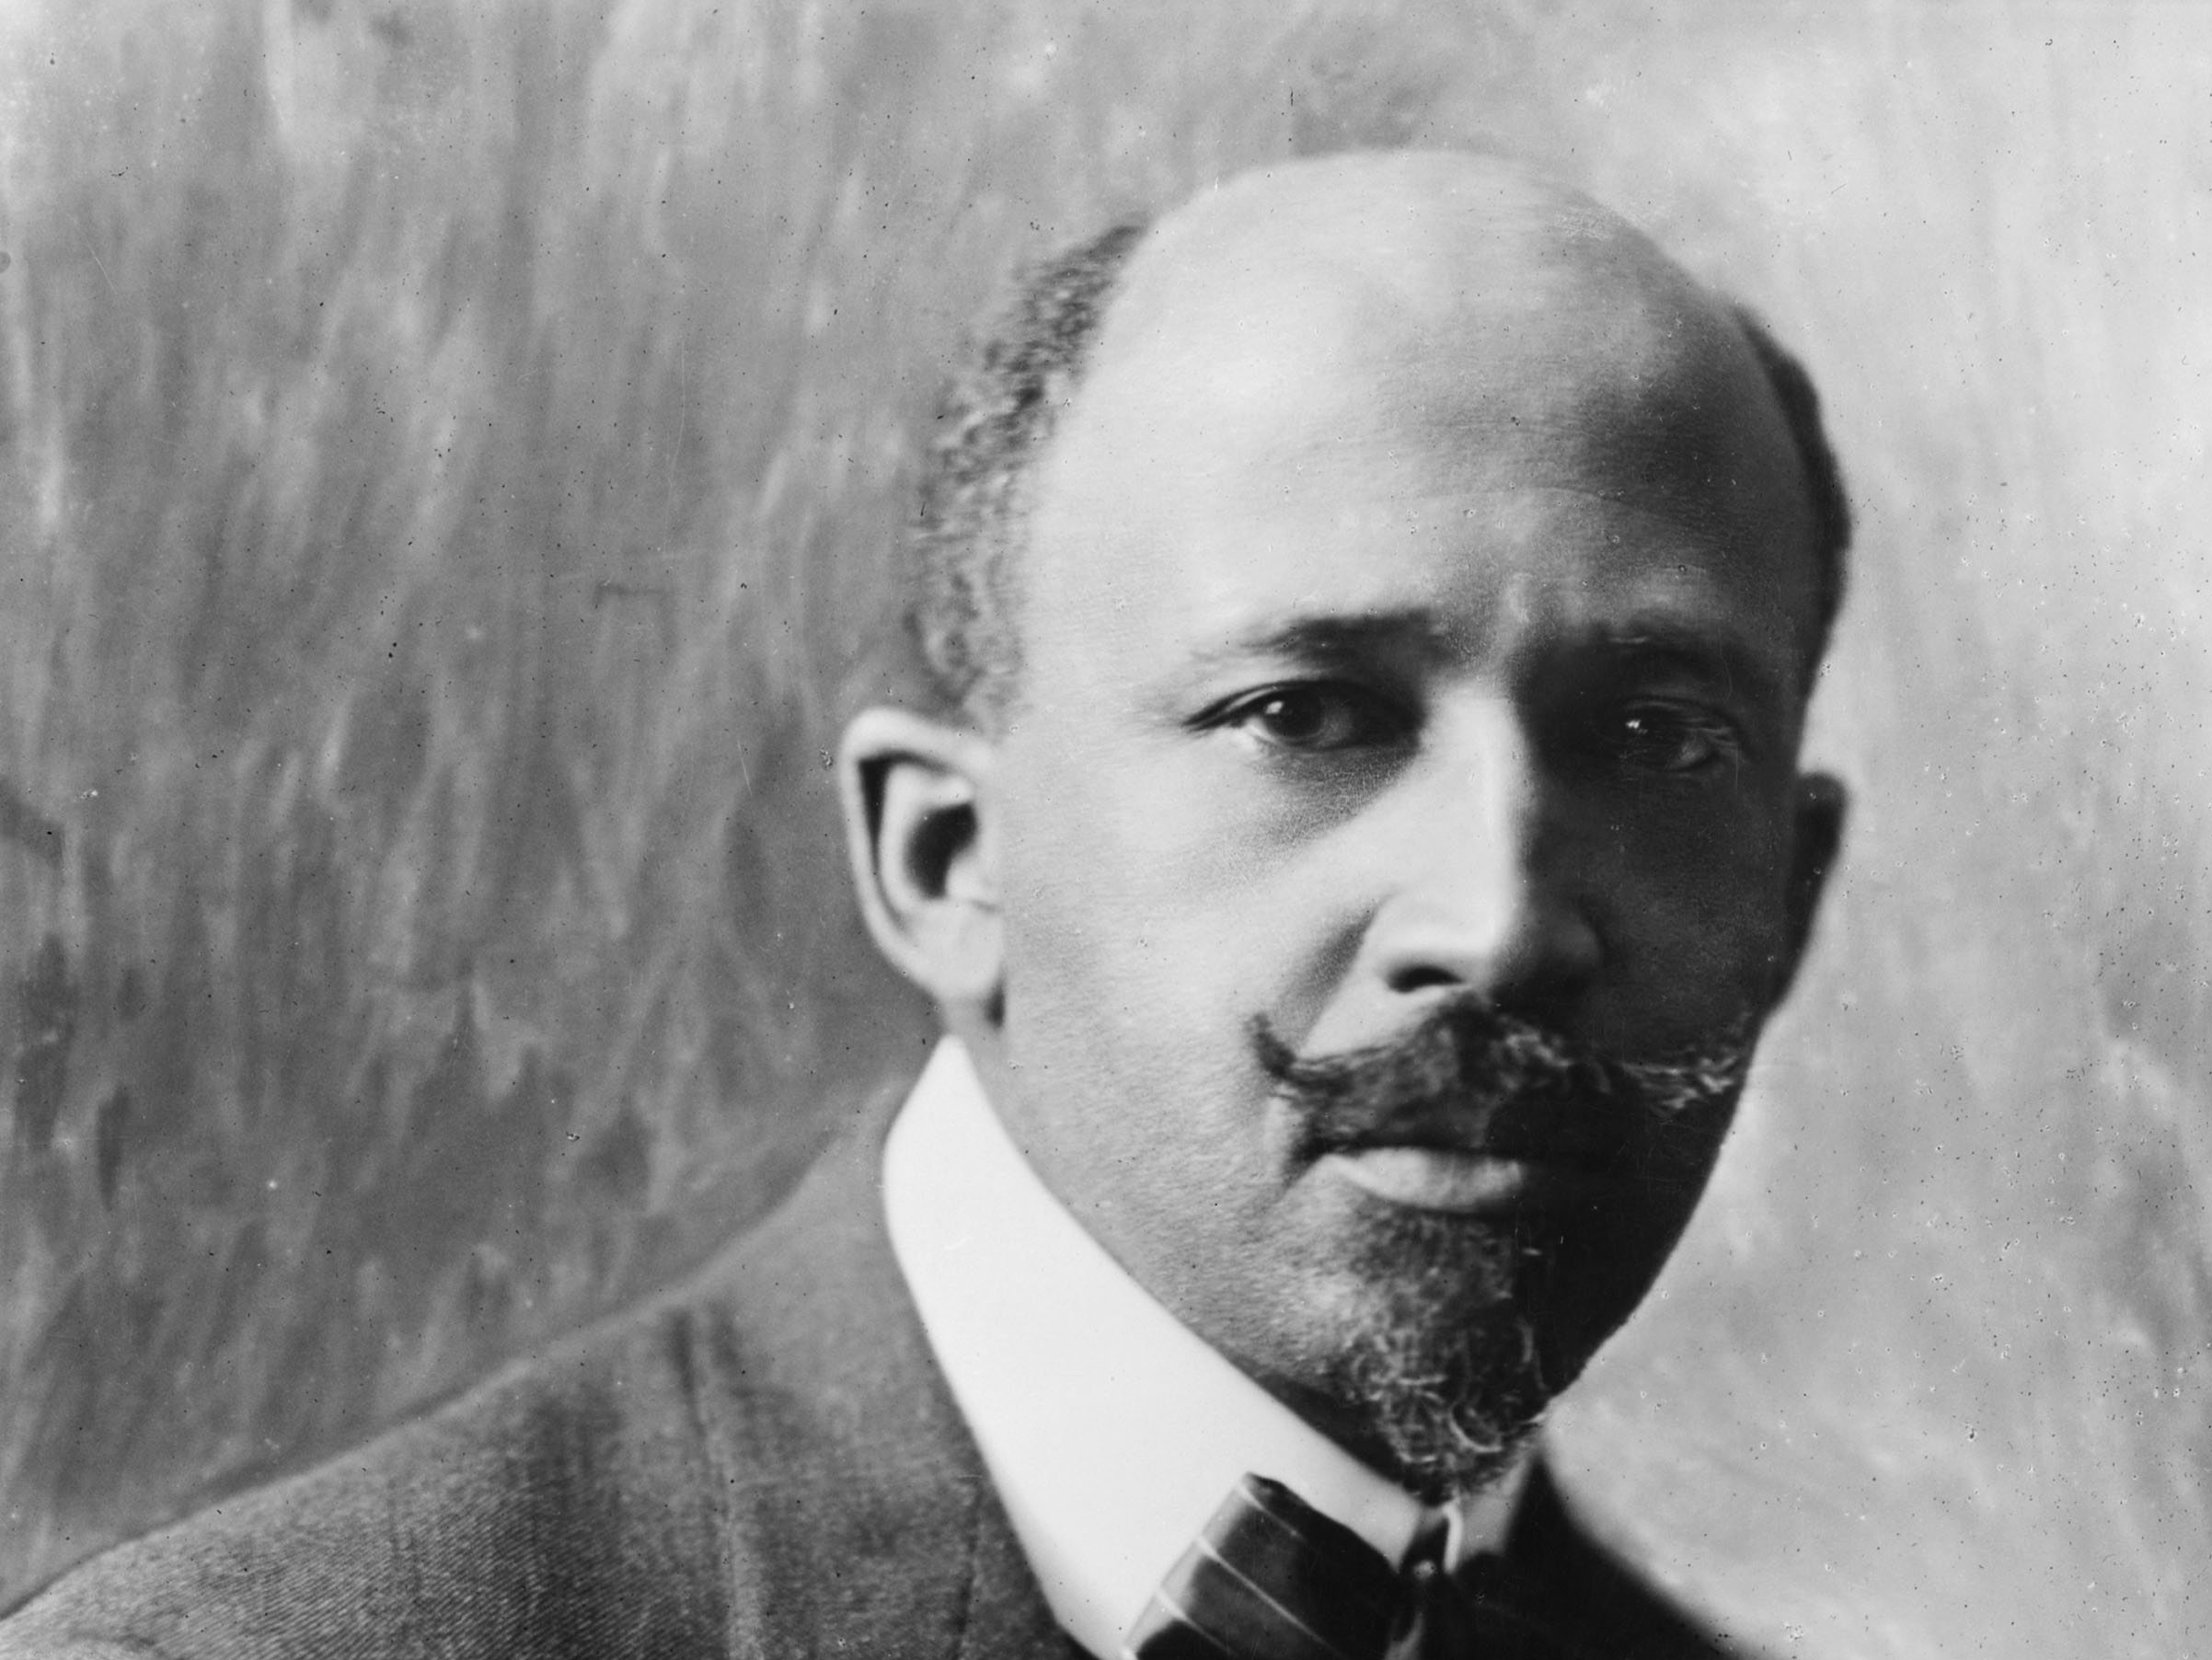 Running after Du Bois